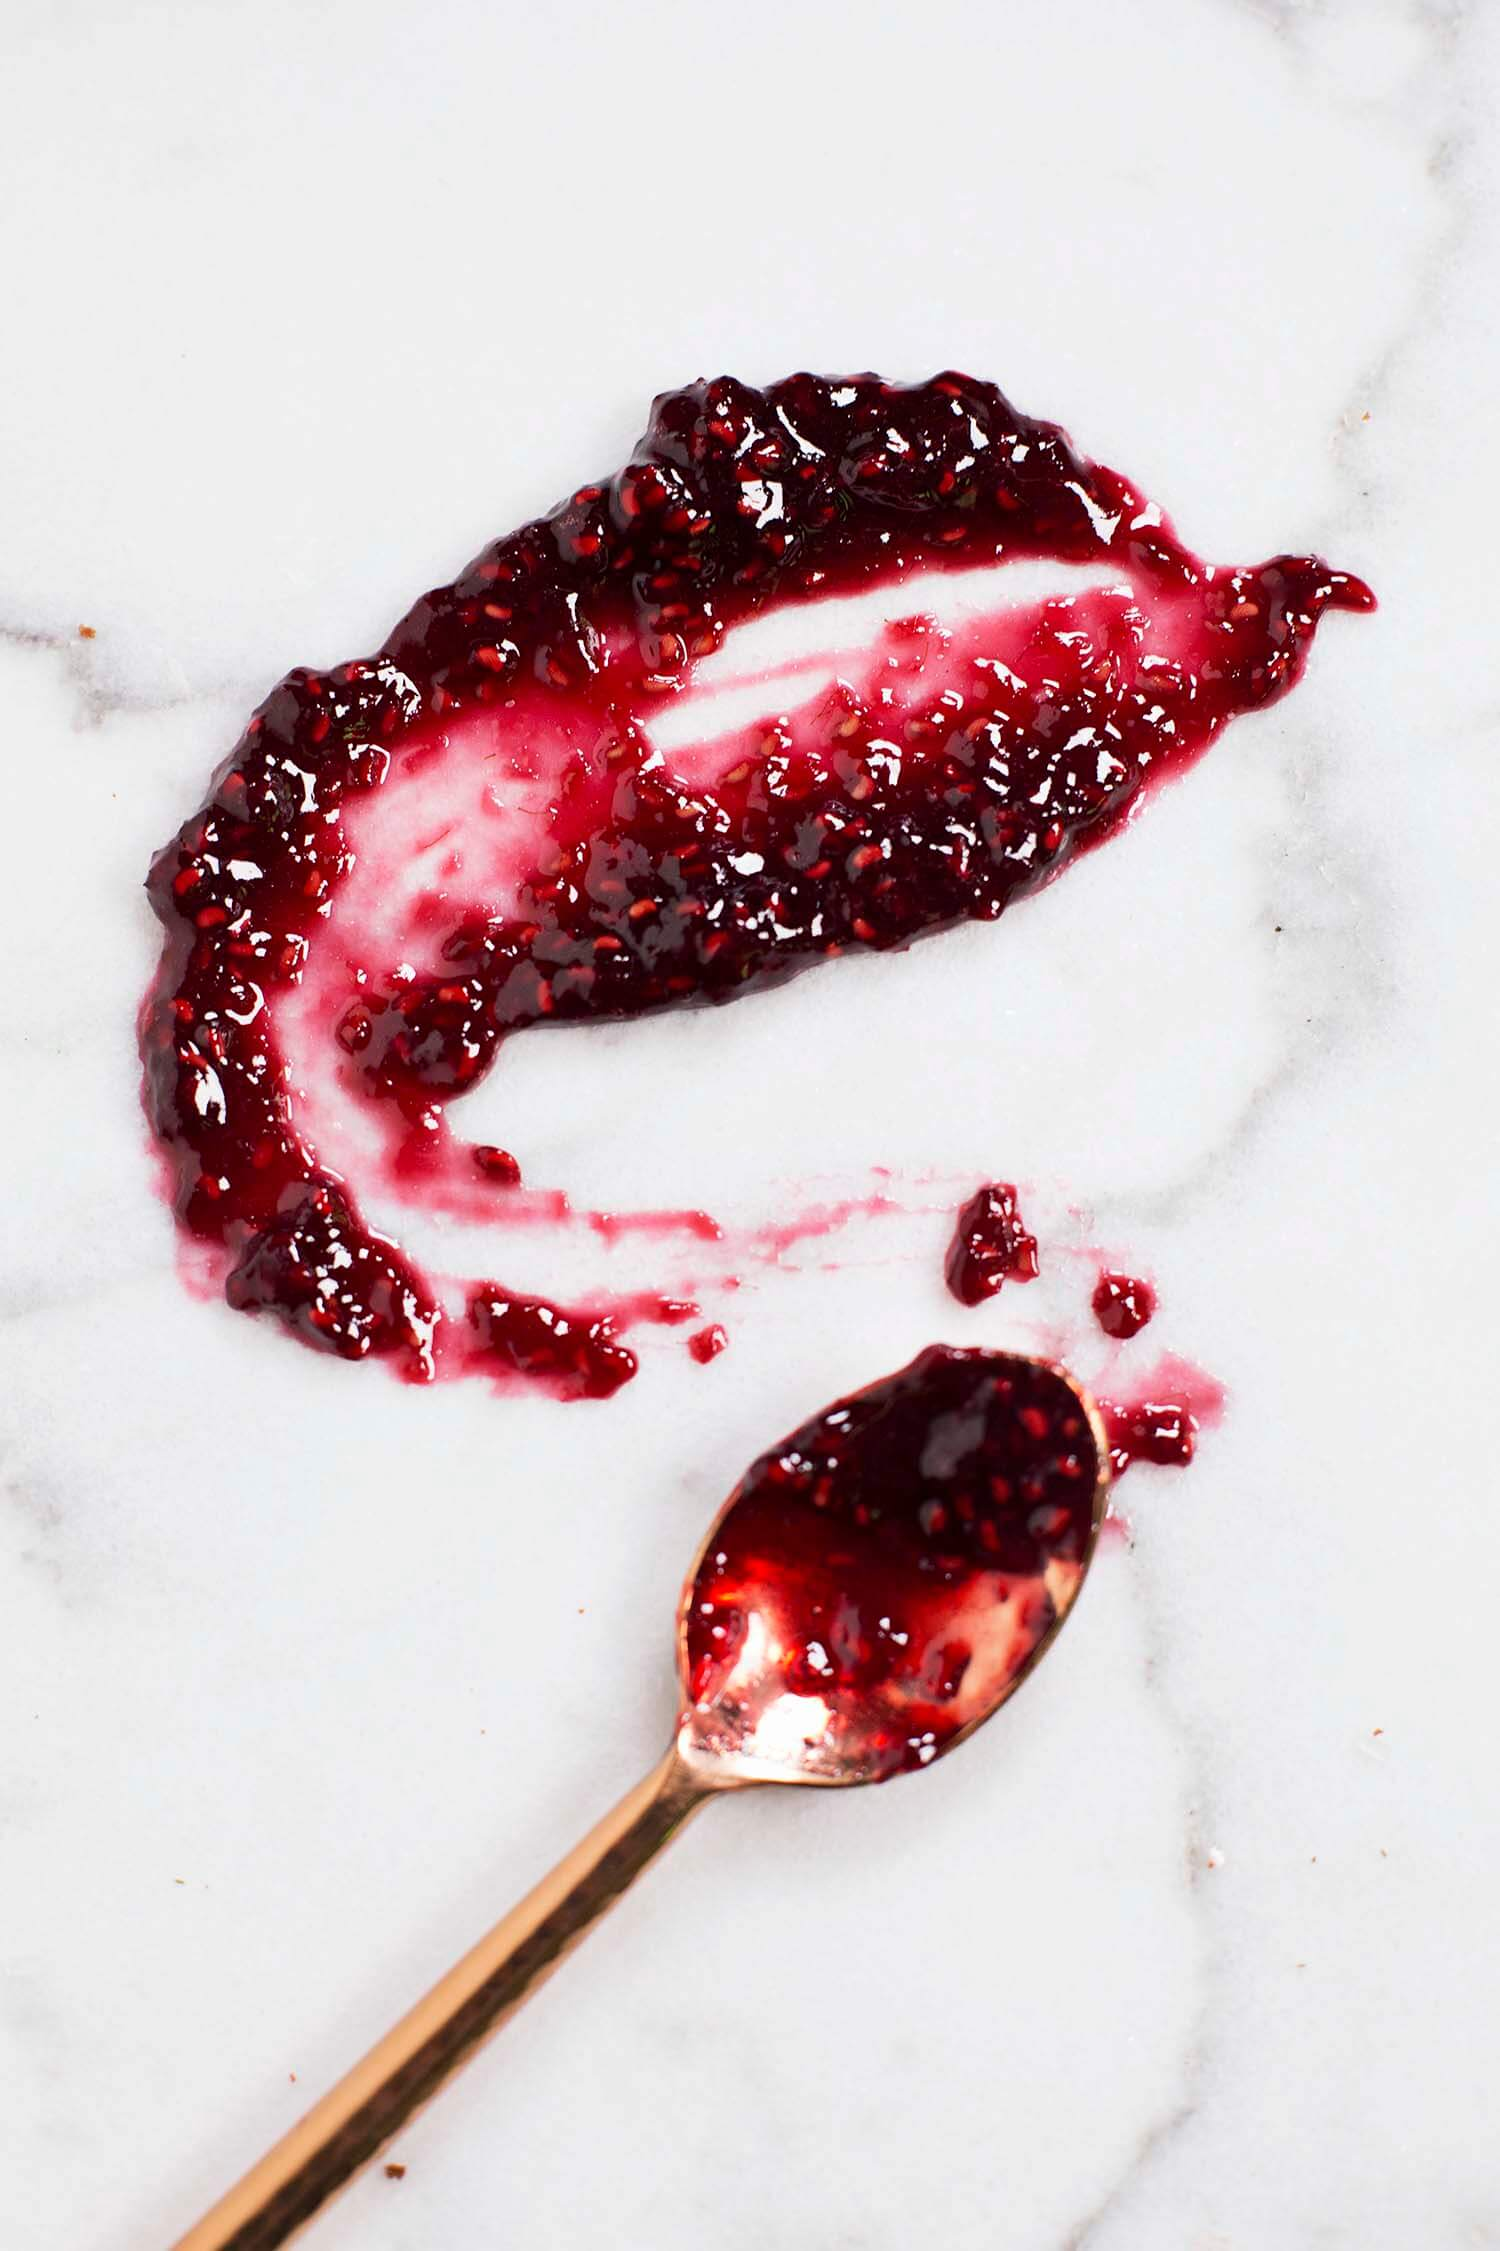 Red wine and raspberry jam (via abeautifulmess.com)